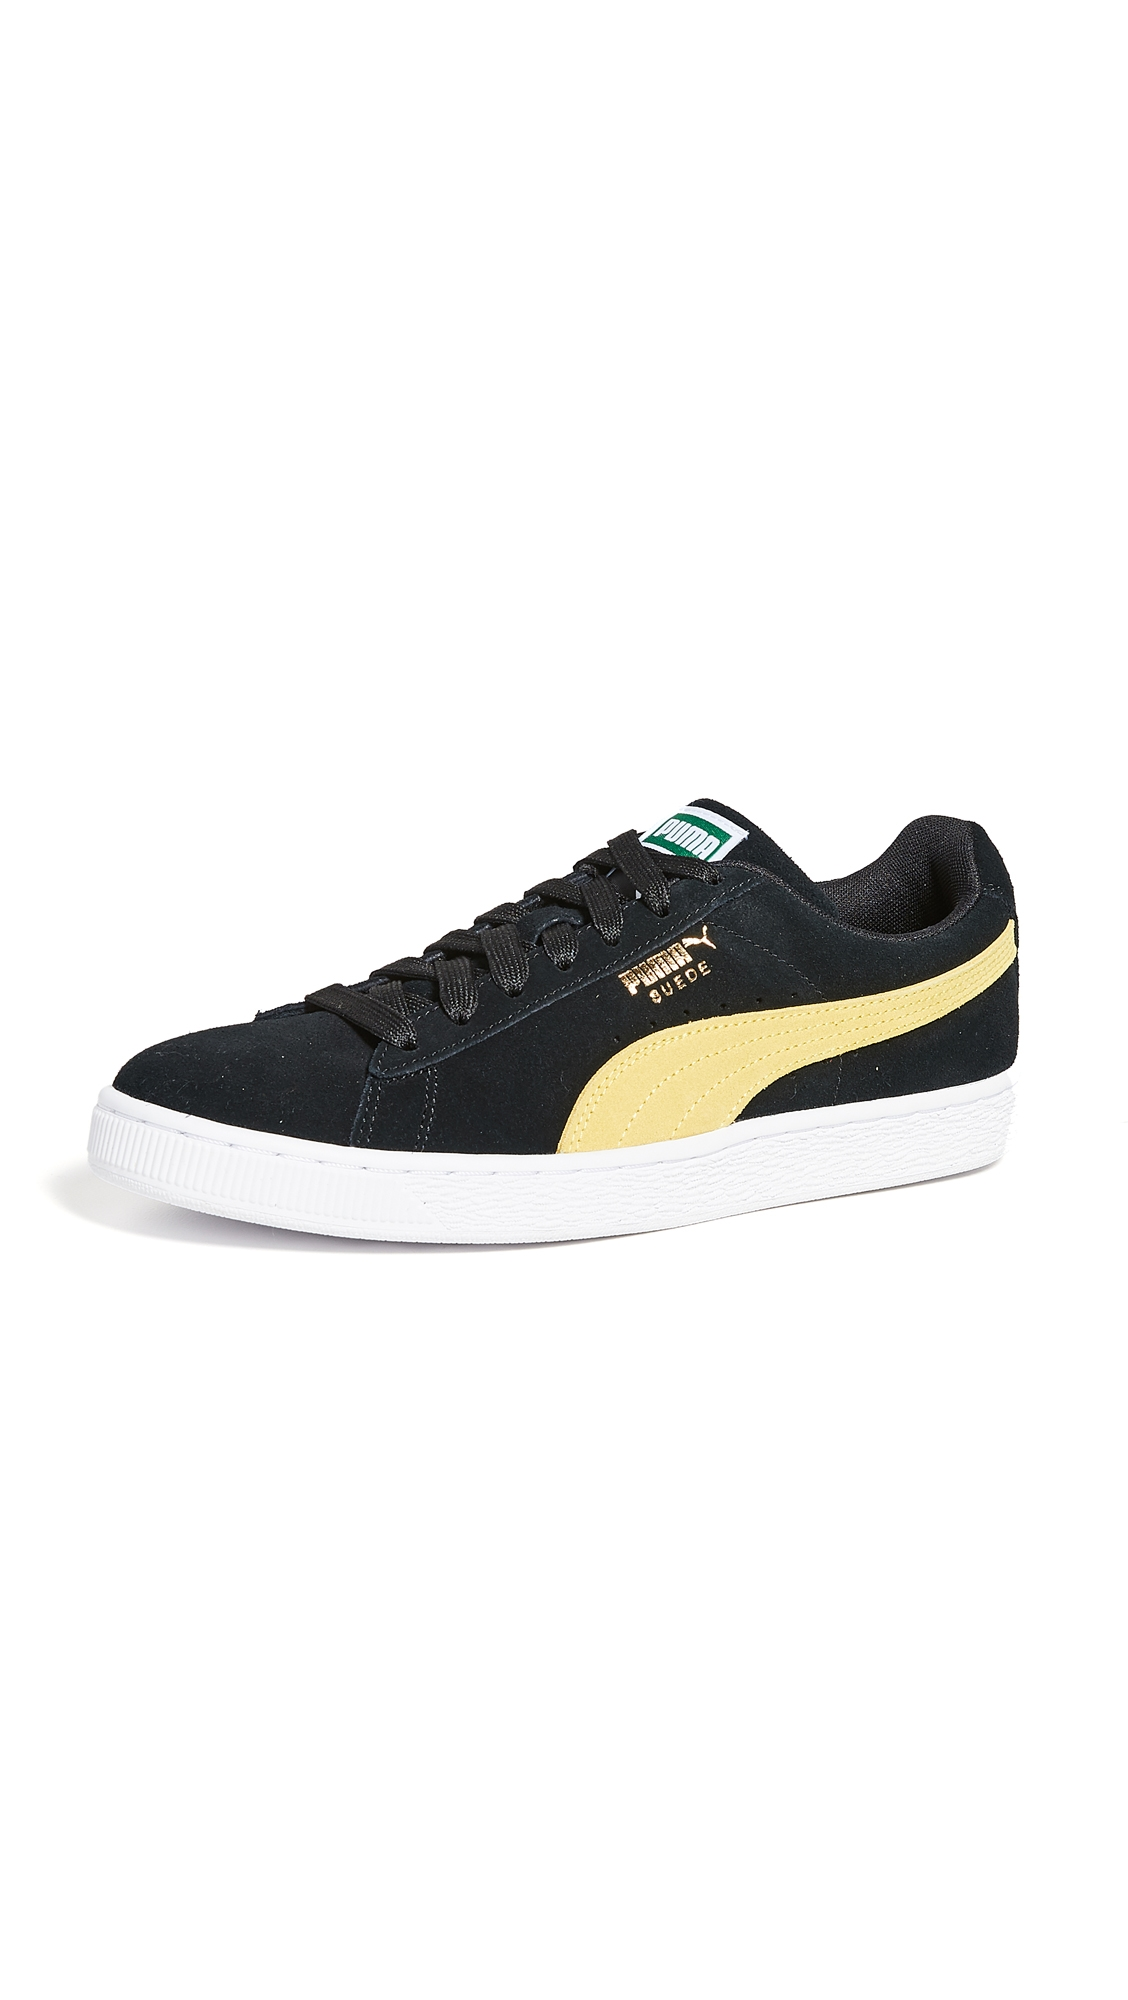 346a1df0903 Puma Suede Classic Sneakers In Black/Yellow | ModeSens